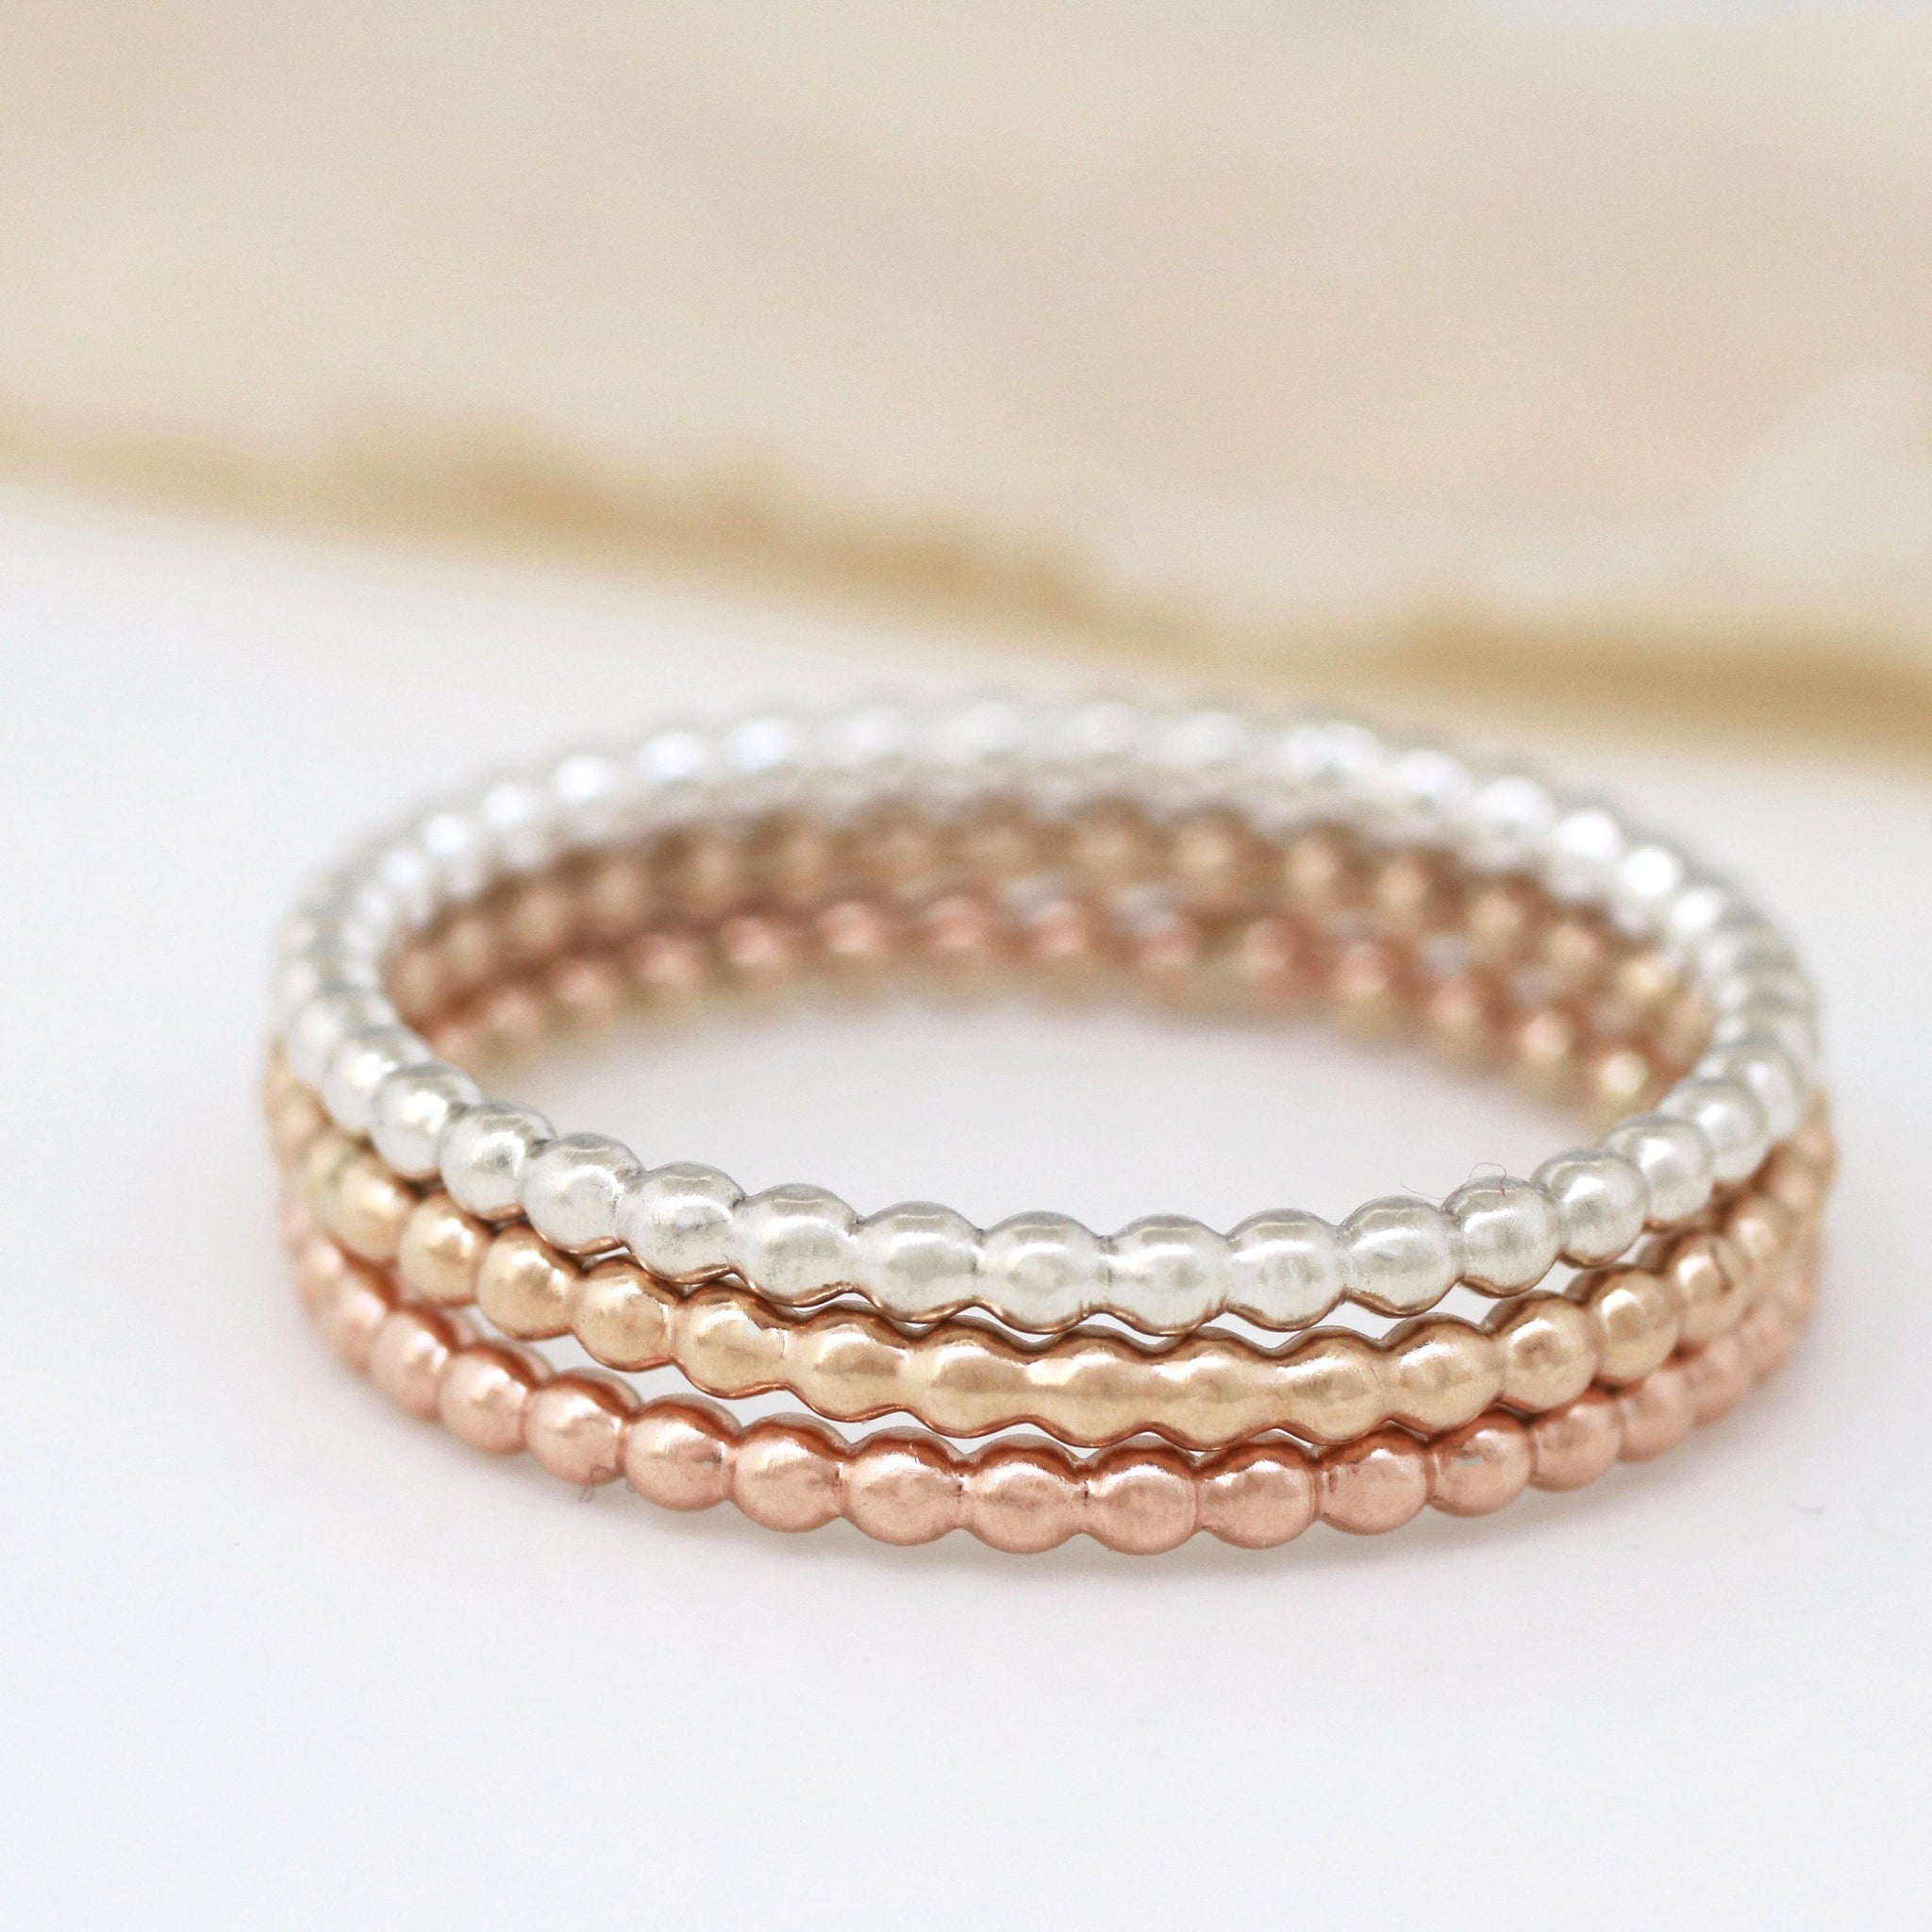 Thin Rings. 9ct Gold Stackable Ring Set